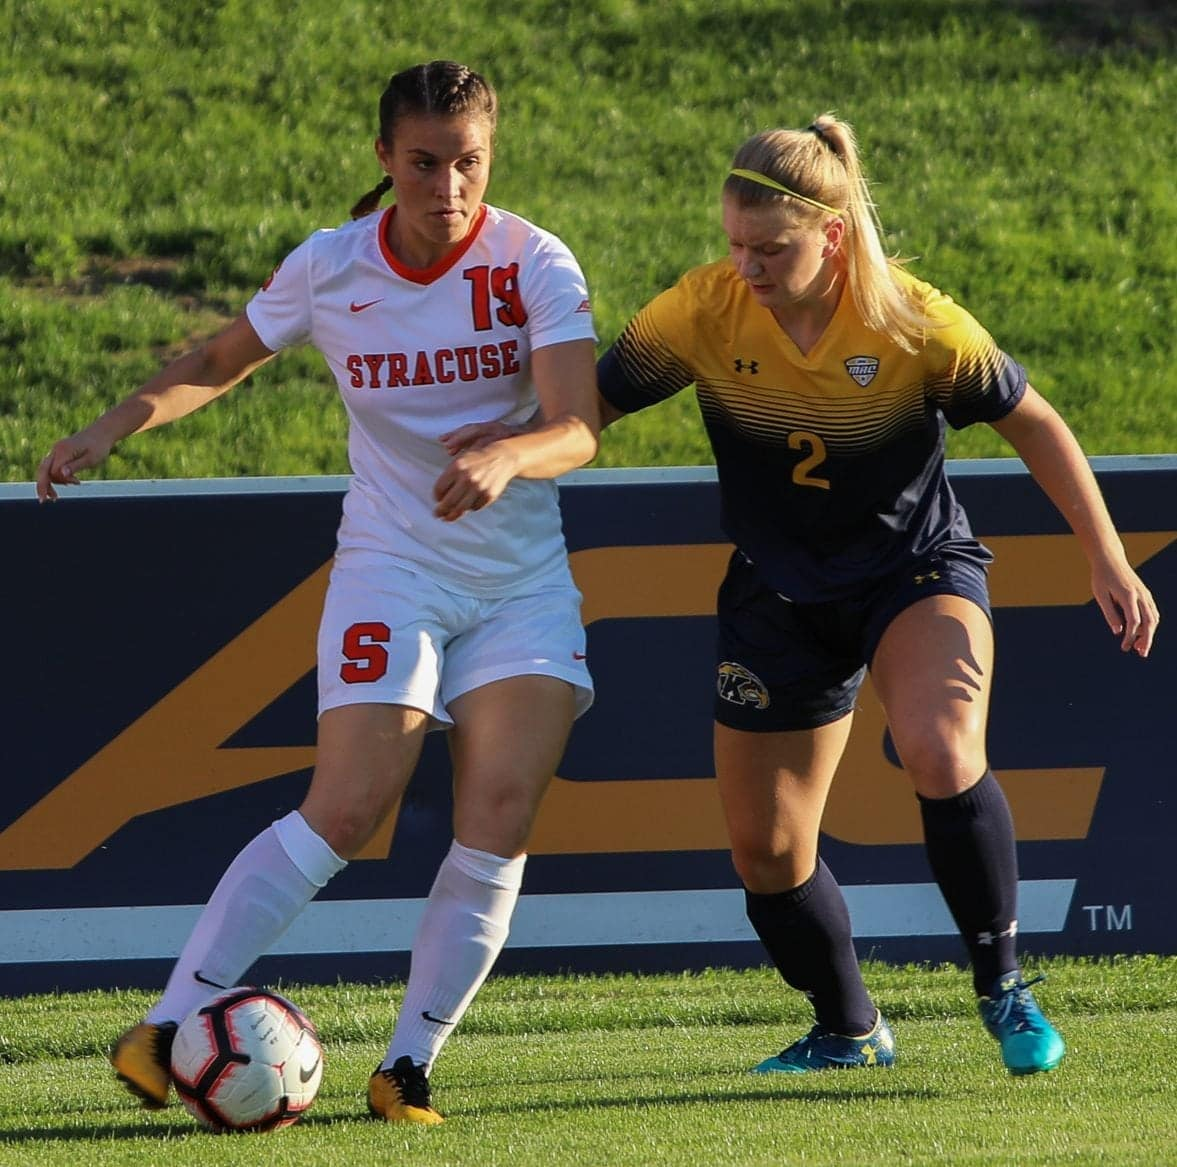 Syracuse Forward Drina Domic Fends Off a Kent State Defender